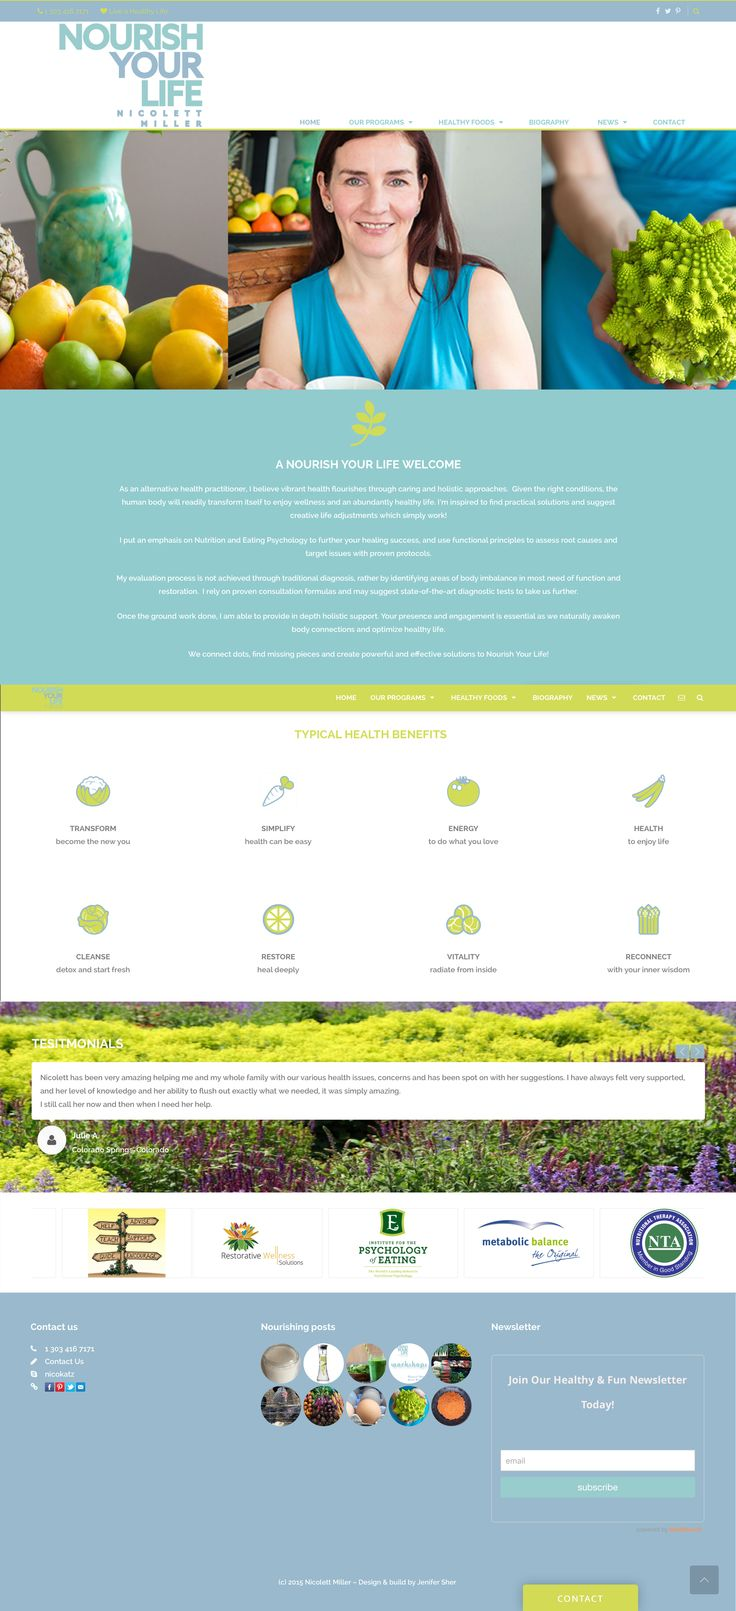 Nourish Your Life must be the most qualified nutritionist in Boulder. Designed and built site in Jumpstart.